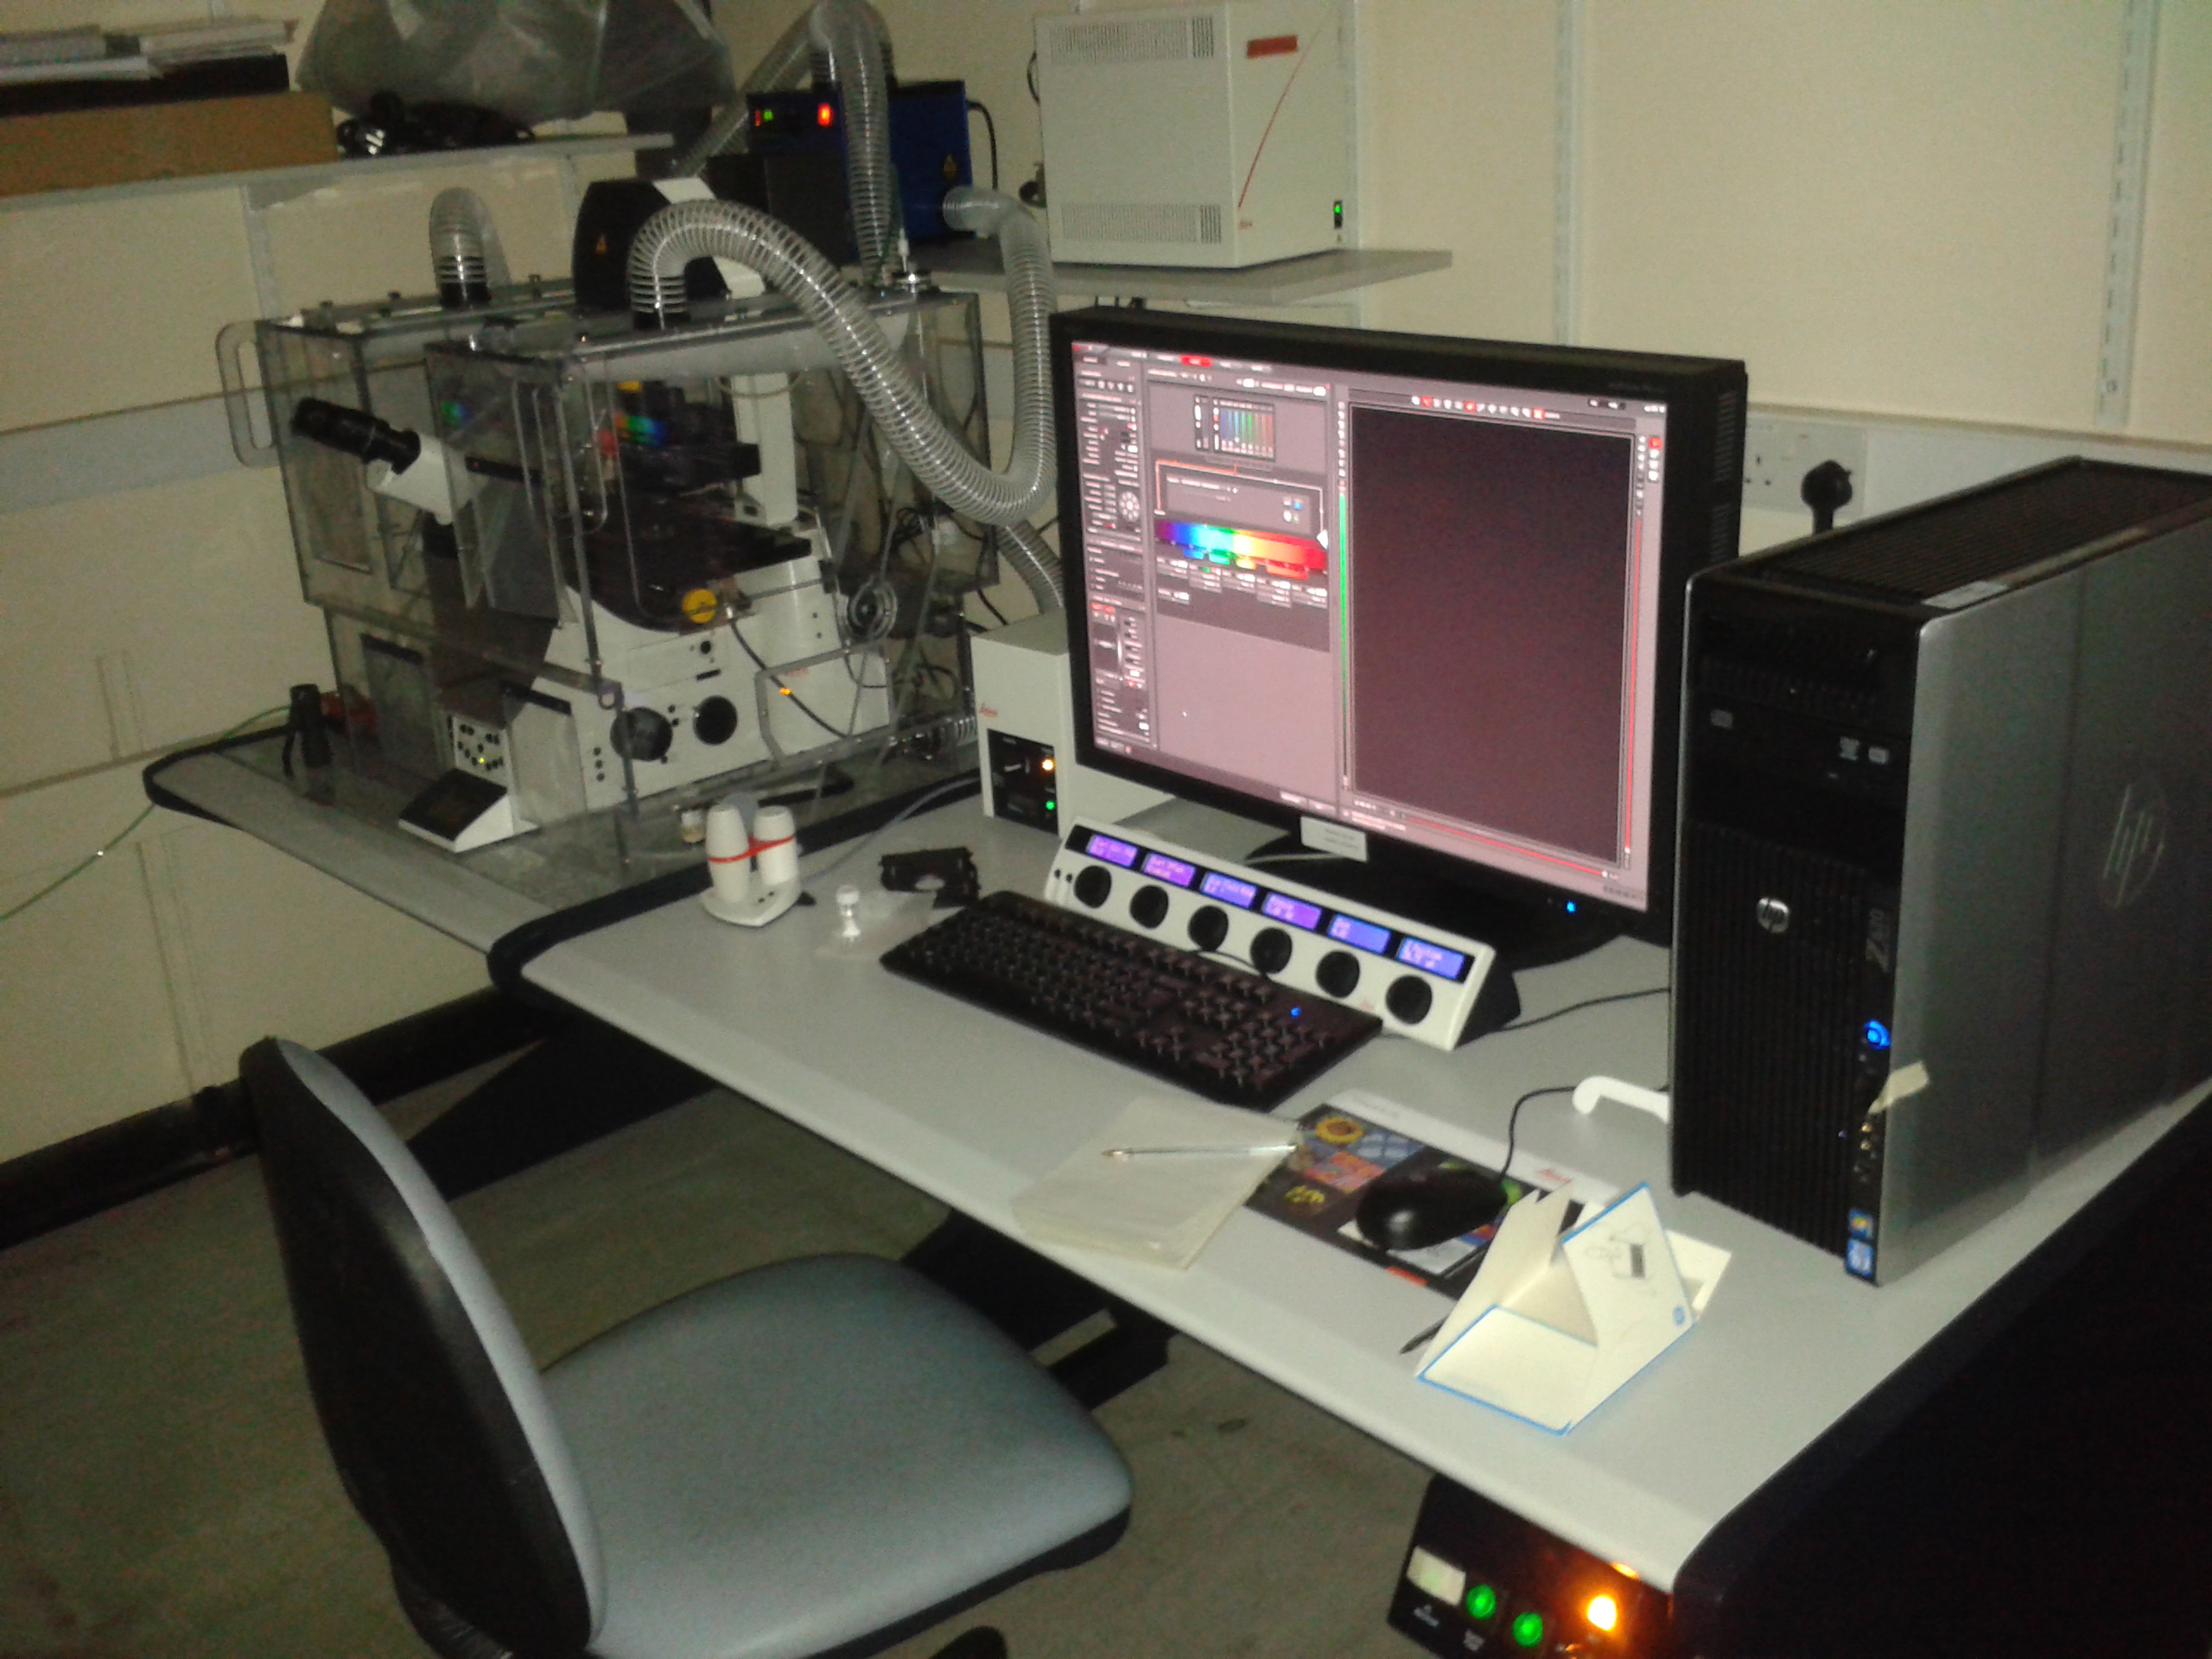 Leica SP8 Confocal Laser Scanning Microscope